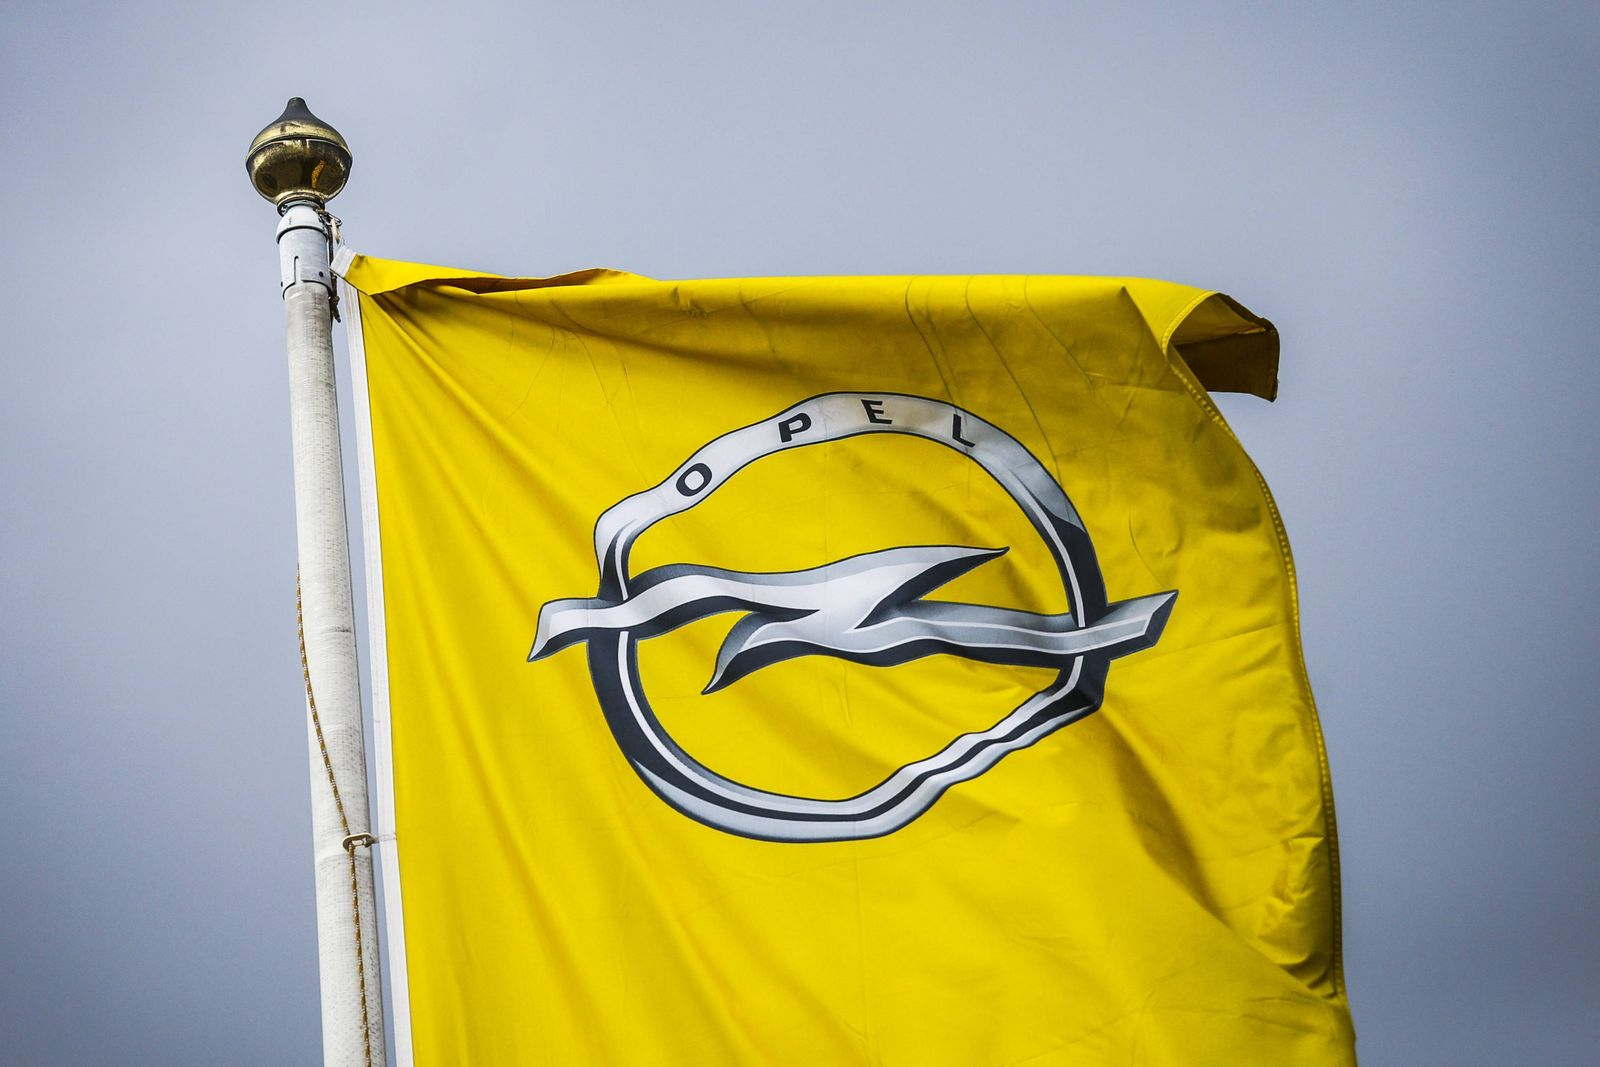 March 7, 2017 - Gliwice, Poland - A flag with the logo of Opel company outside the Opel car factory of General Motors M